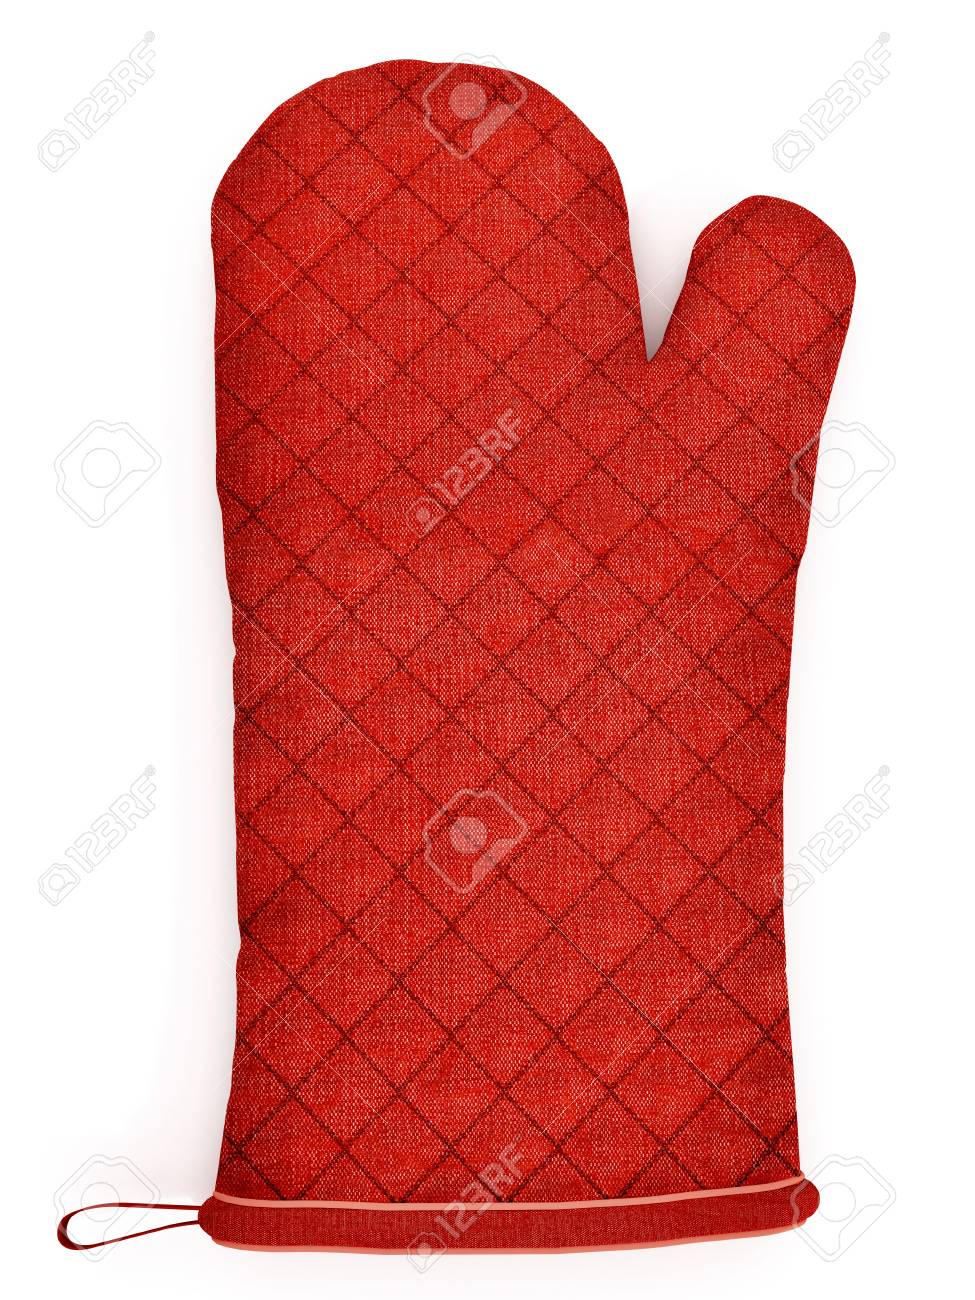 kitchen gloves table round red isolated on white background stock photo 51680123